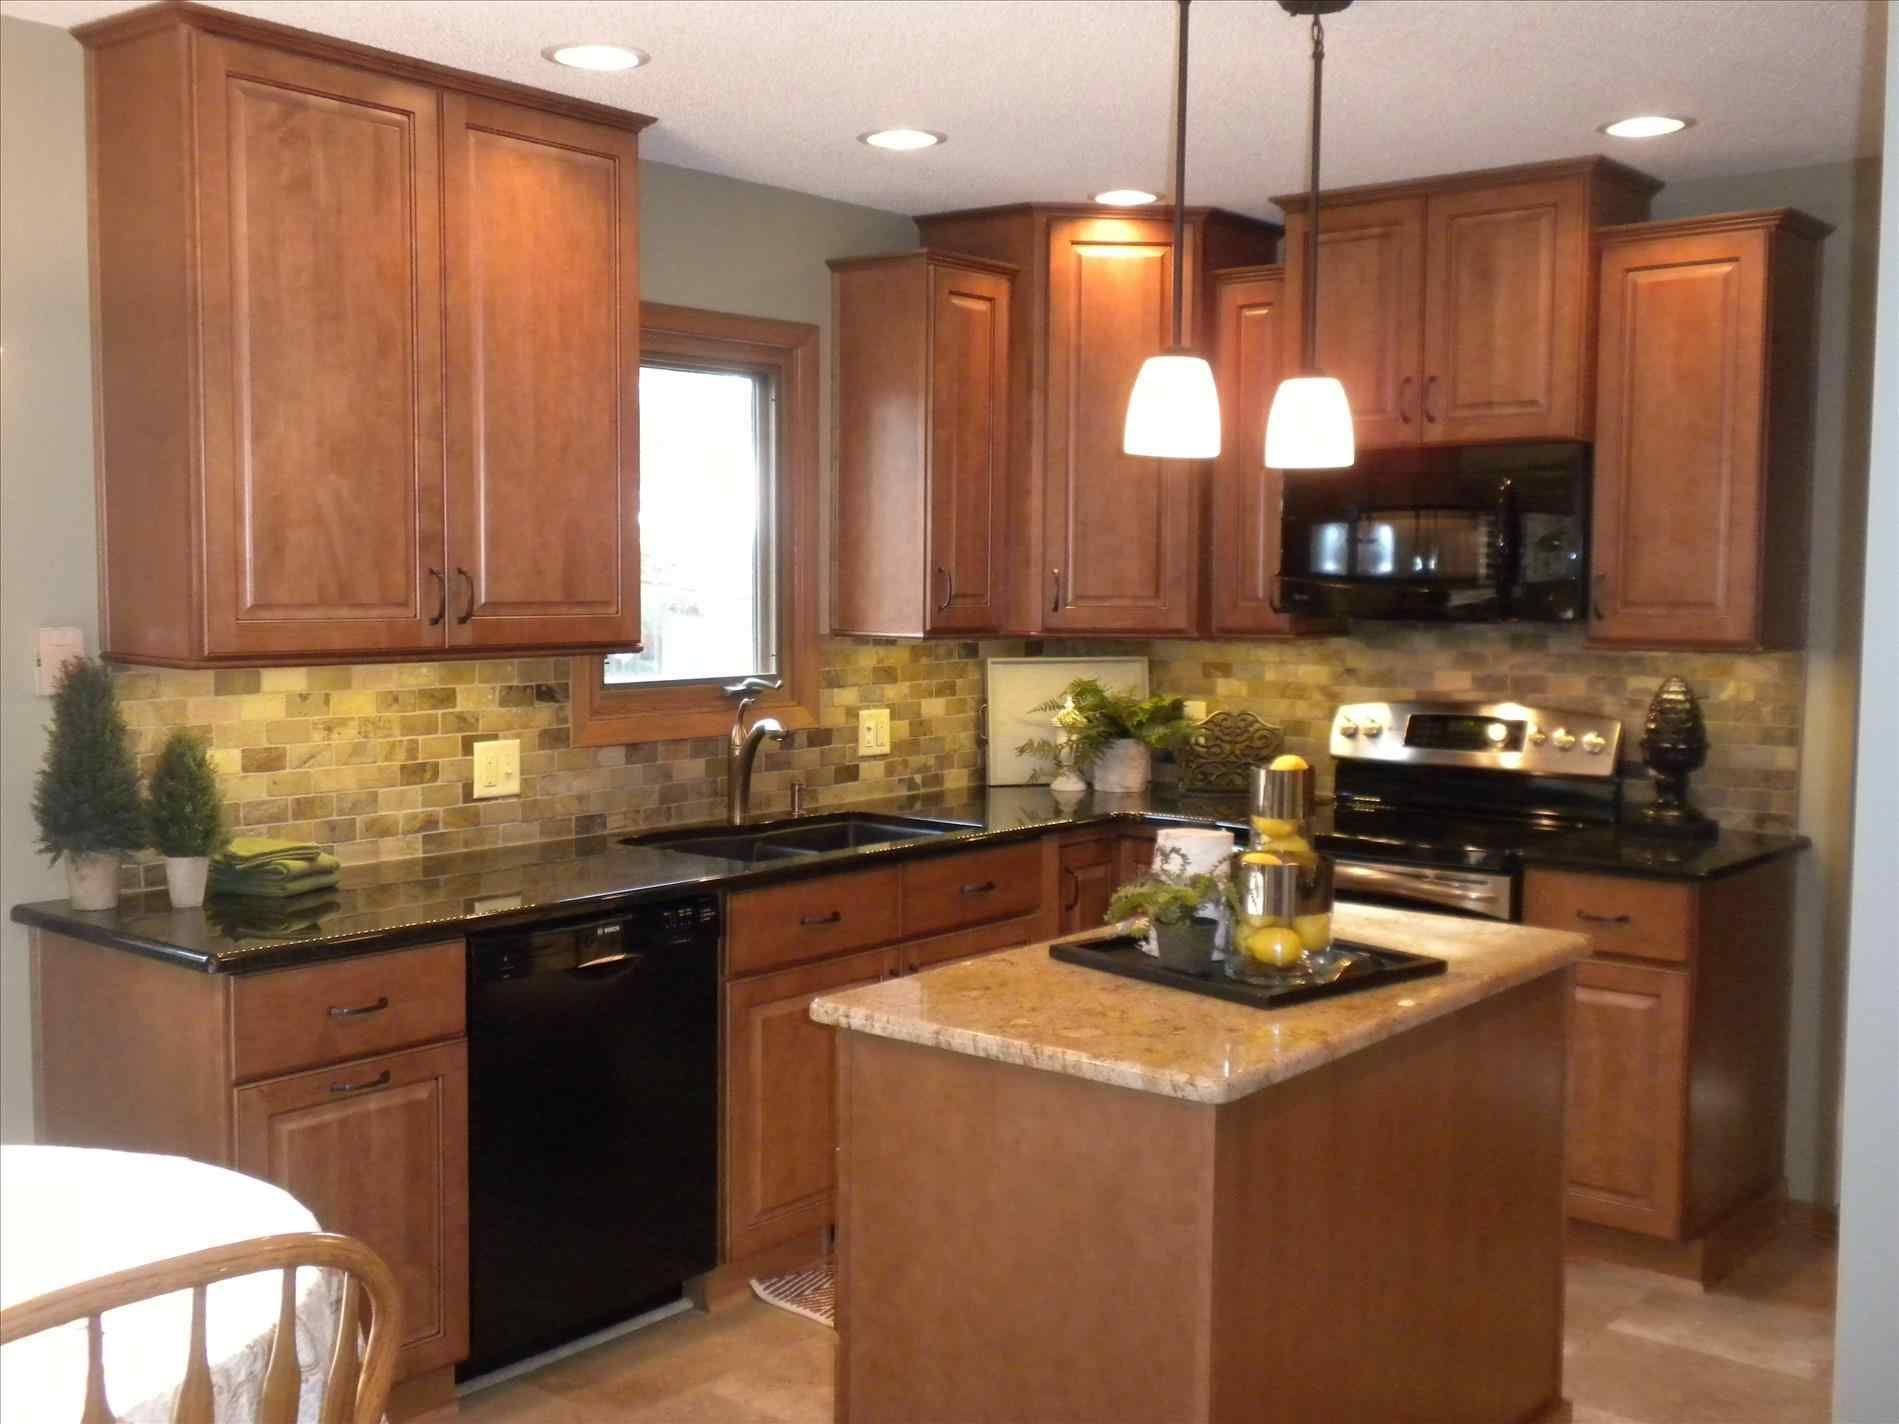 What Color Countertops Go With White Cabinets Black Stainless Steel Appliances With Oak Cabinets Colors